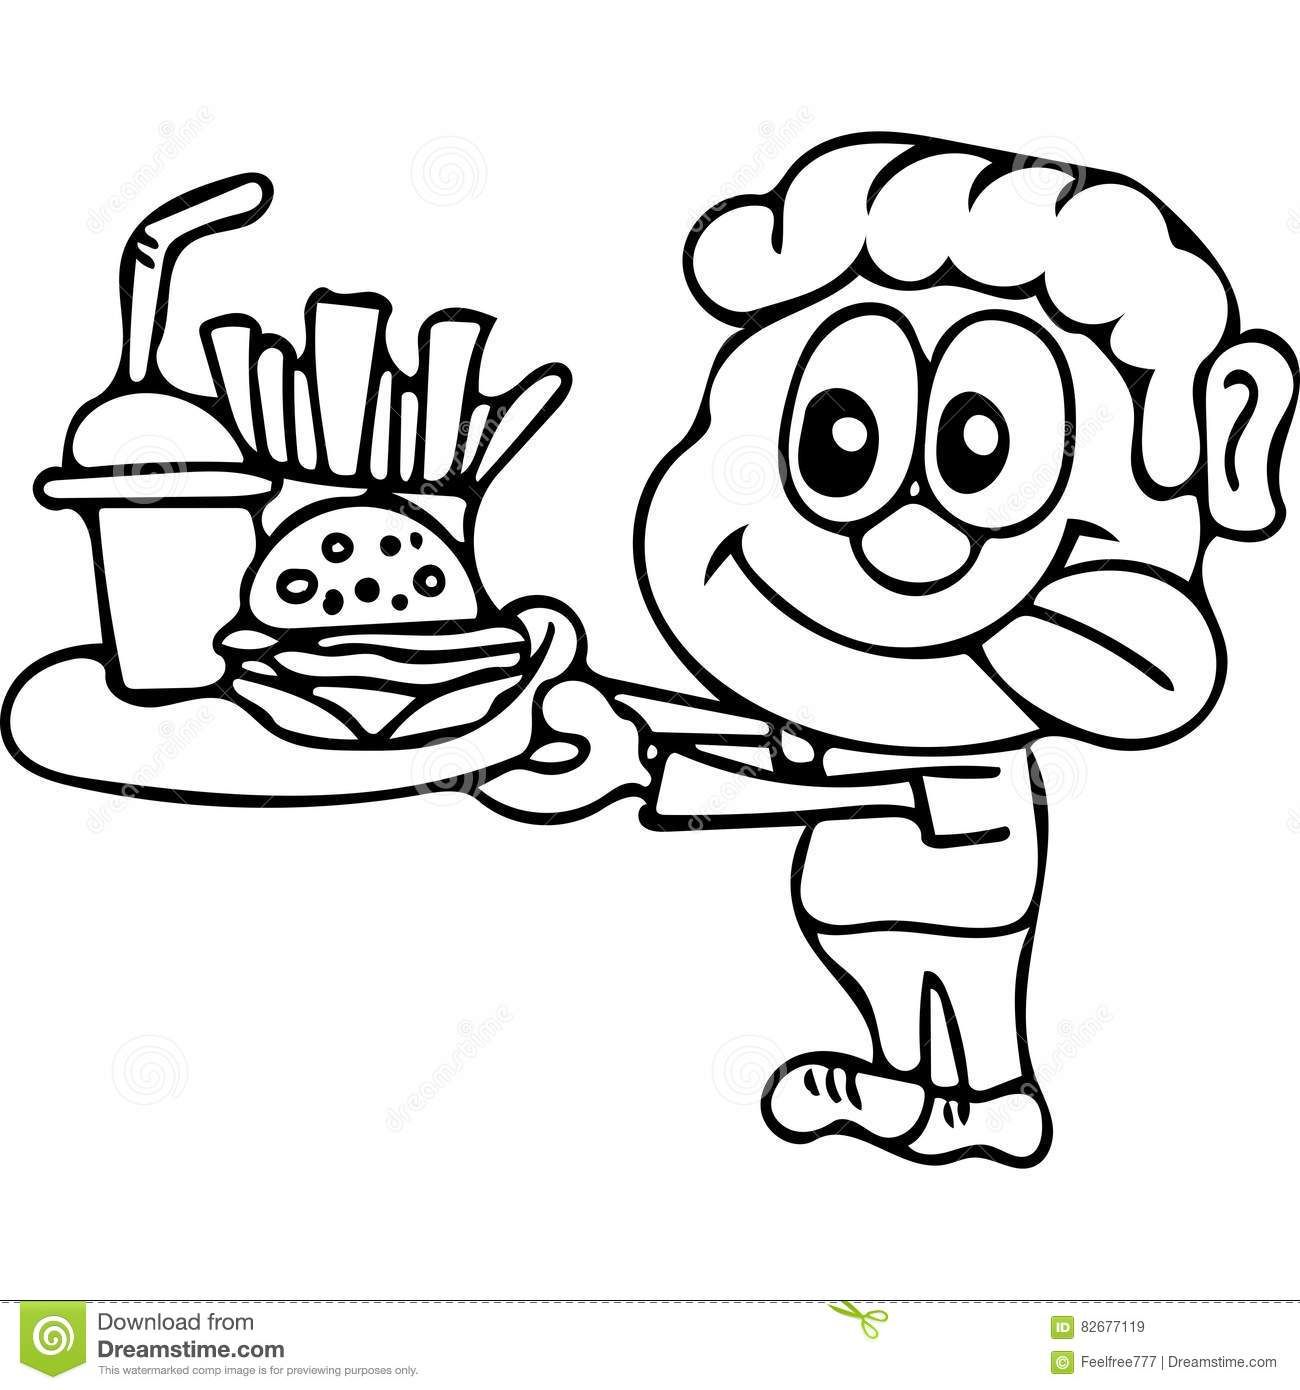 Fast Food Kids Coloring Pages Stock Illustration - Illustration of ...